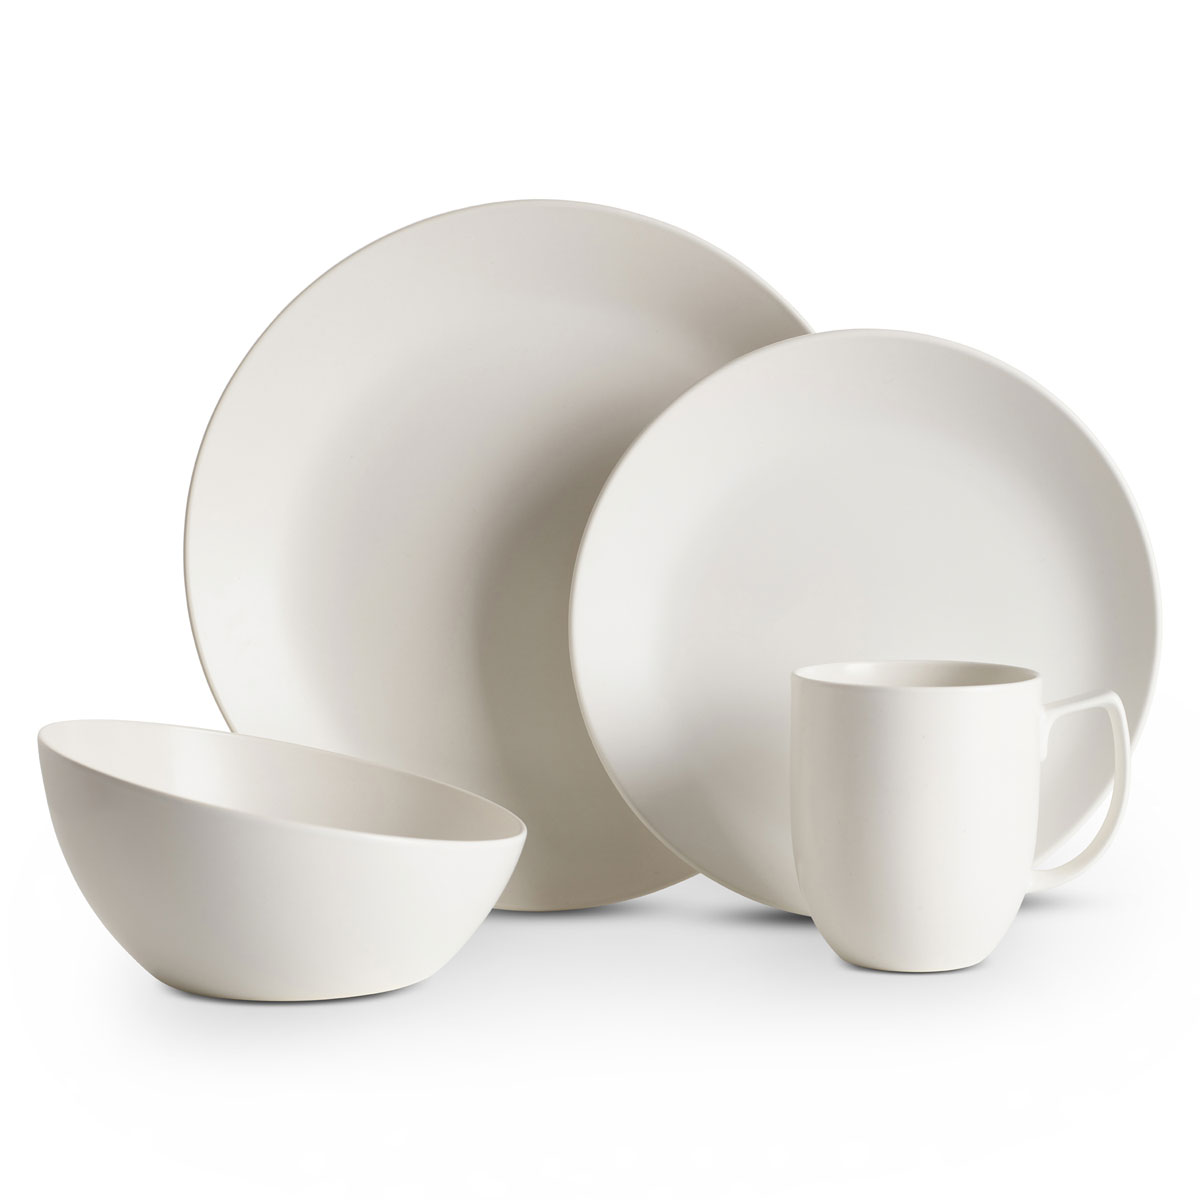 Nambe Orbit 4 Piece Place Setting Starry White